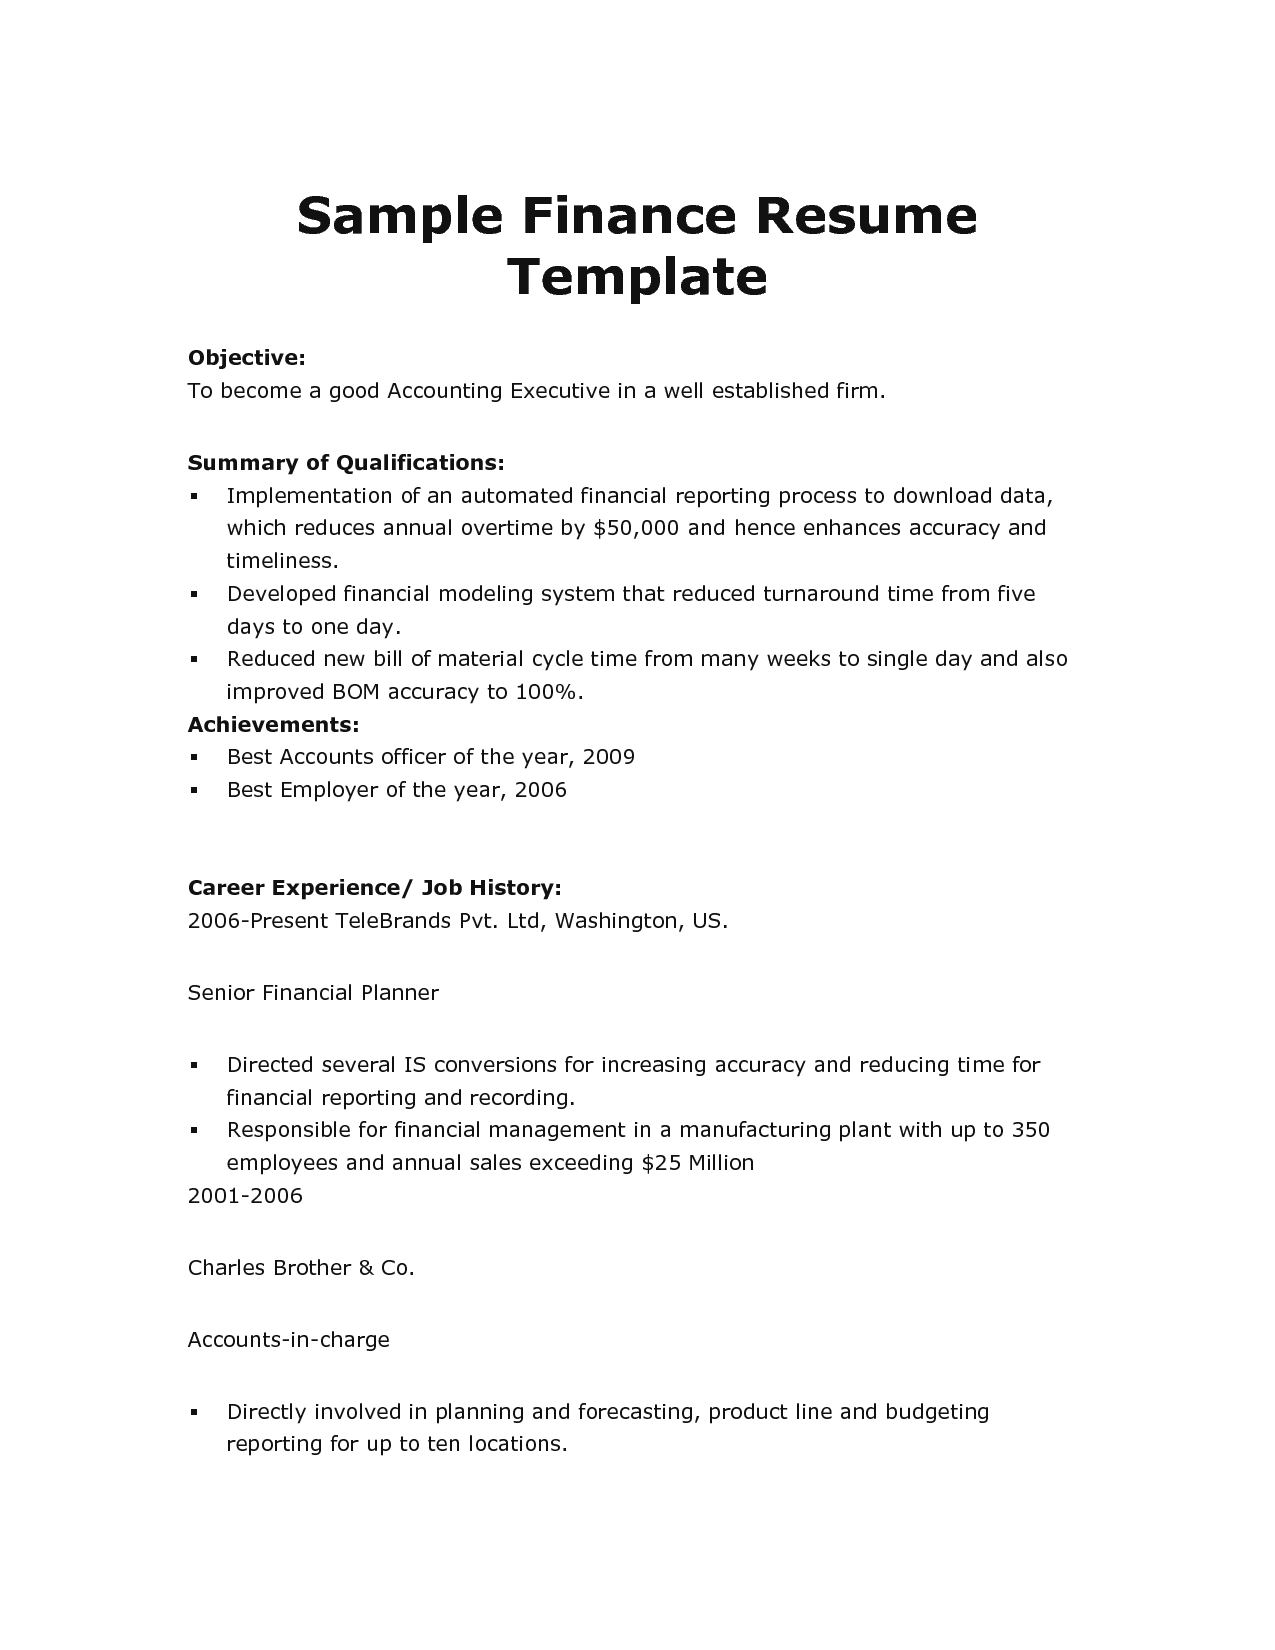 Download High Quality Professional Resume Template Samples Download ...